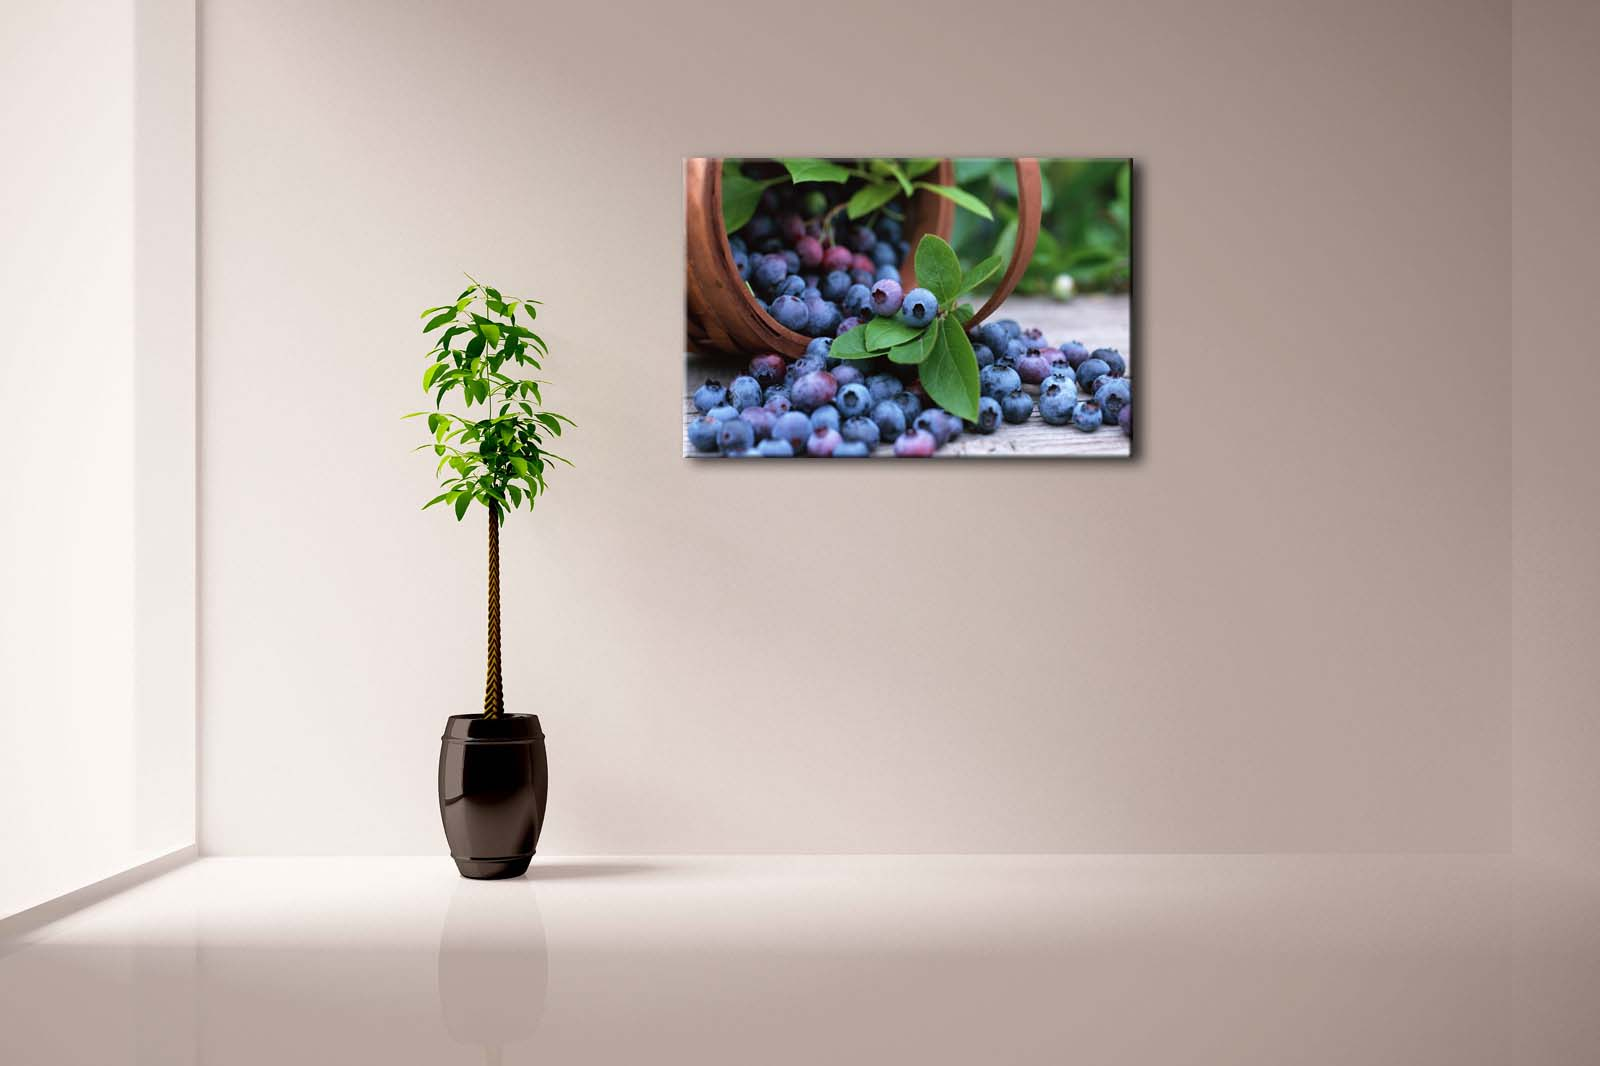 Framed Wall Art Pictures Blueberry Basket Canvas Print Food Modern Posters With Wooden Frames For Home Living Room Decor - 3